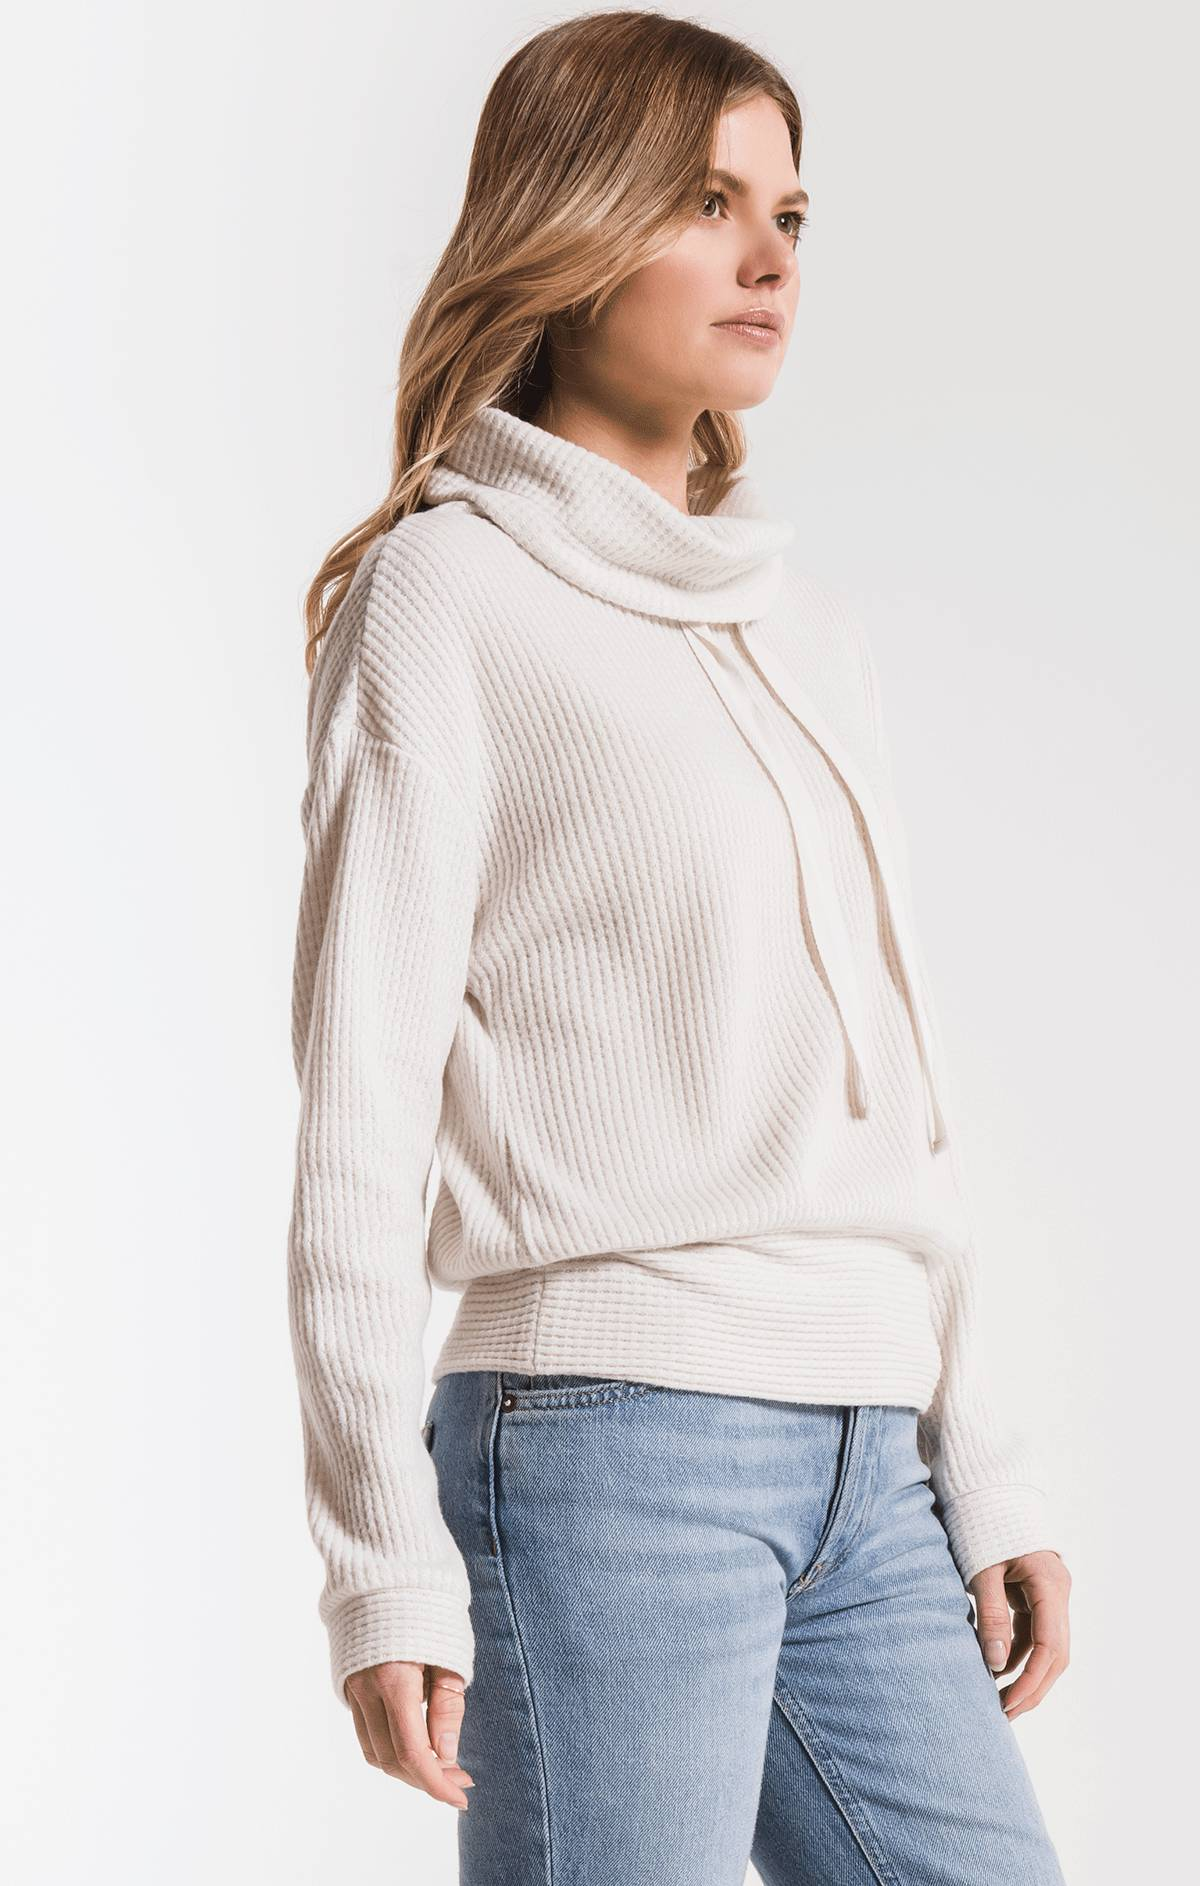 Tops The Cowl Neck Waffle Thermal Top Champagne Mist